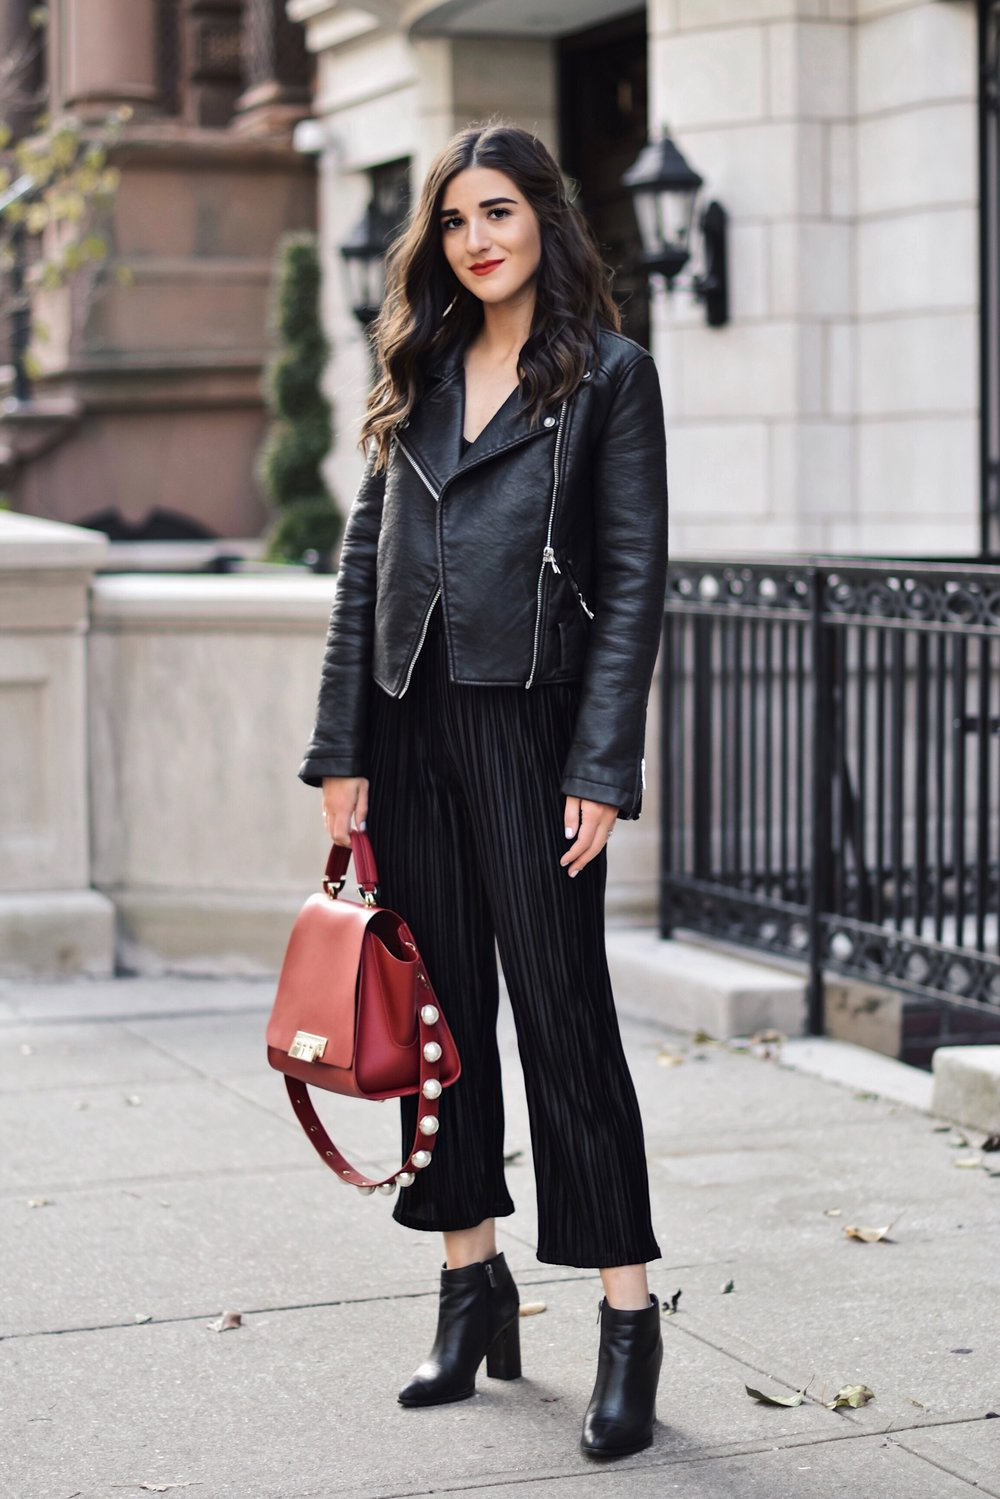 The Secret To Beating The Instagram Algorithm Black Velvet Set Leather Jacket Esther Santer Fashion Blog NYC Street Style Blogger Outfit OOTD Trendy All Black Monochrome Red Purse Zac Posen Bag Collaboration Booties Winter Fall Look Shopping Wear Buy.jpg